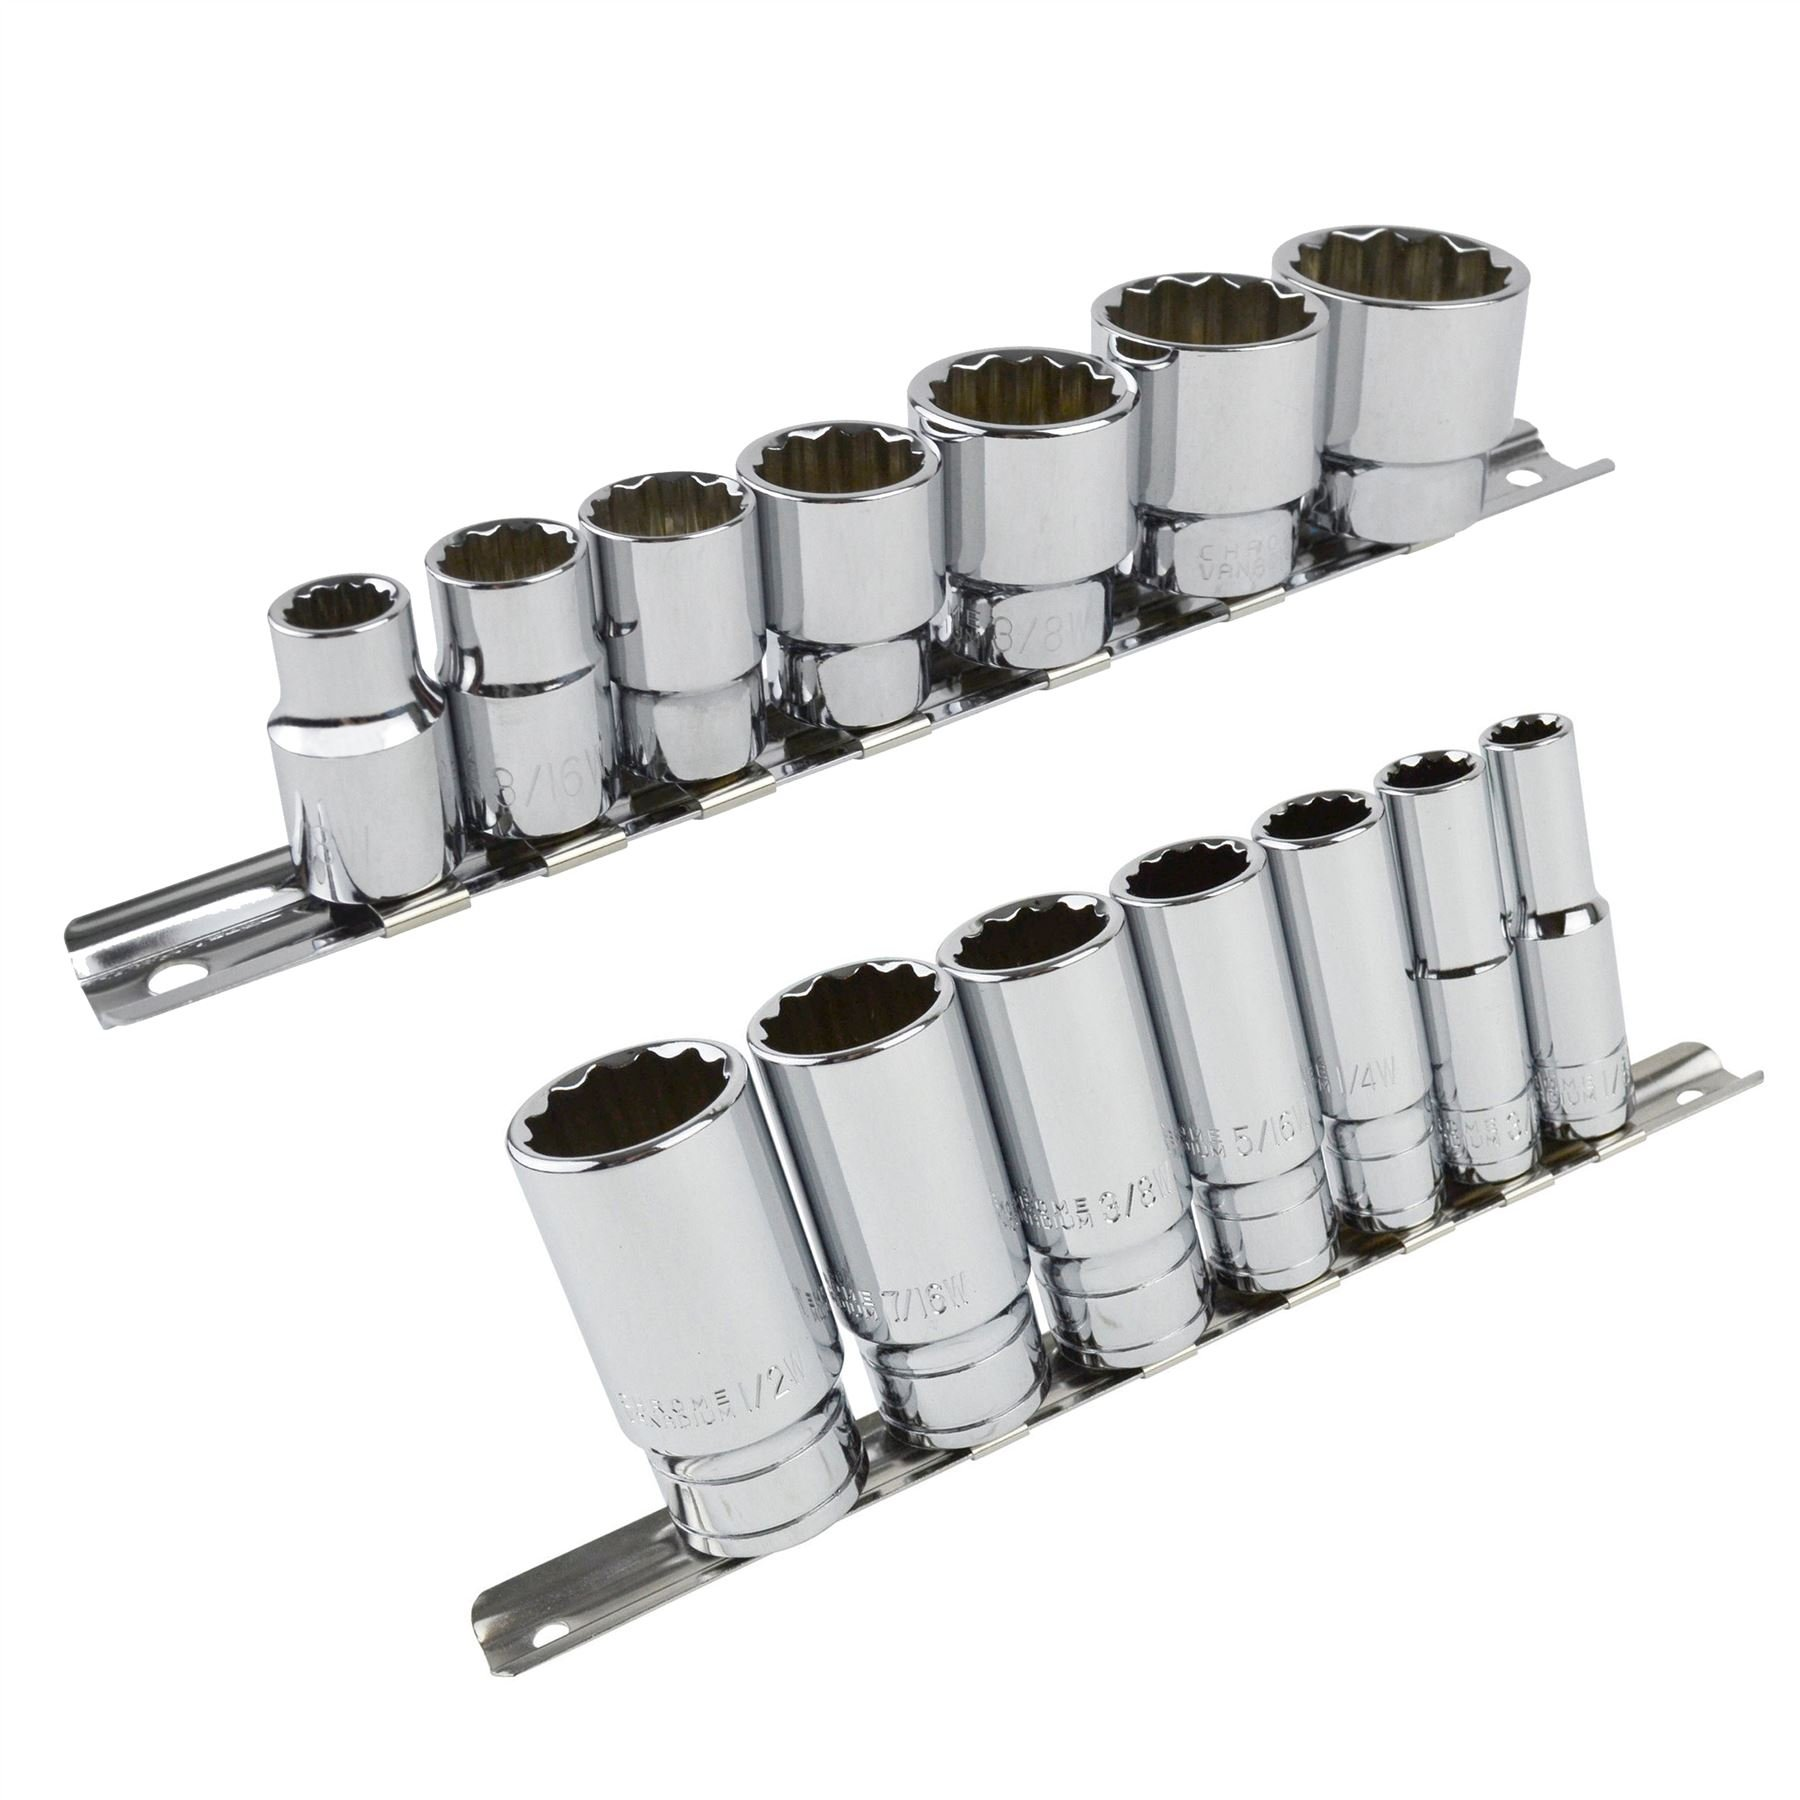 Whitworth BSF BSW 3/8'' Drive Shallow And Deep Sockets 14pc 12 Sided Bi-Hex by AB Tools-Laser